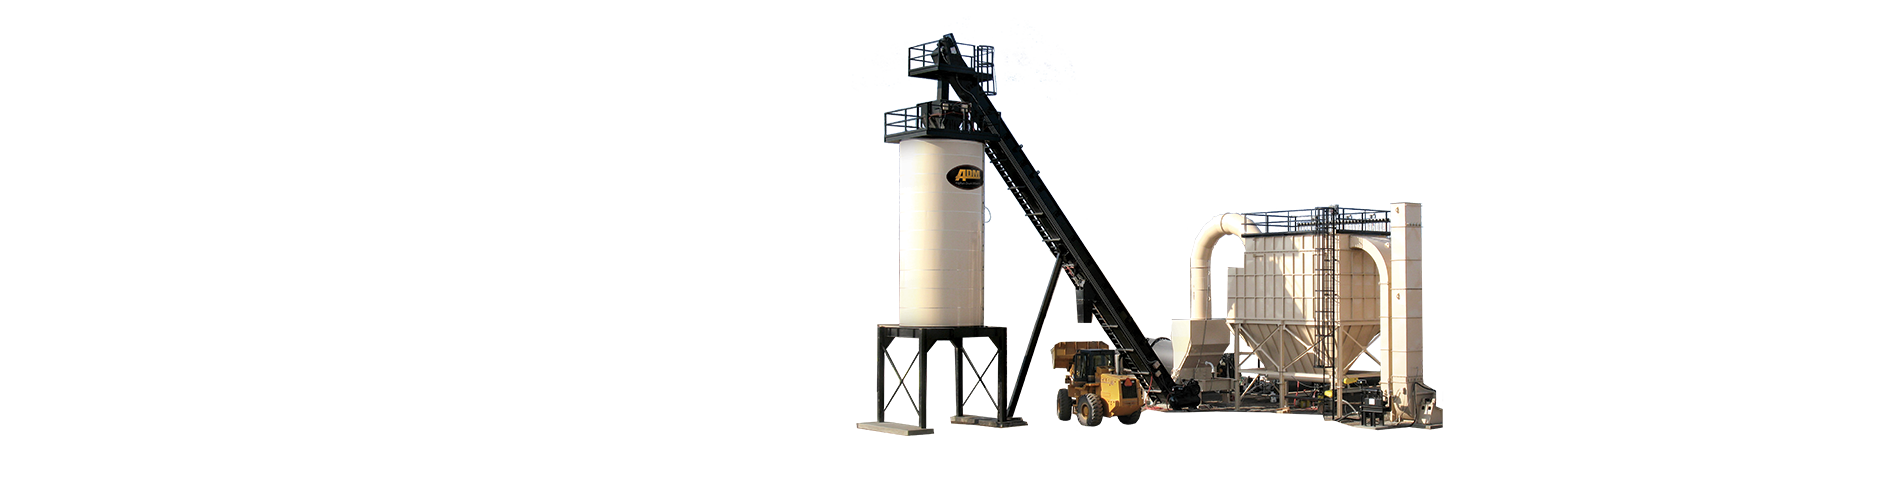 ADM RoadBuilder Portable Asphalt Mixing Plant